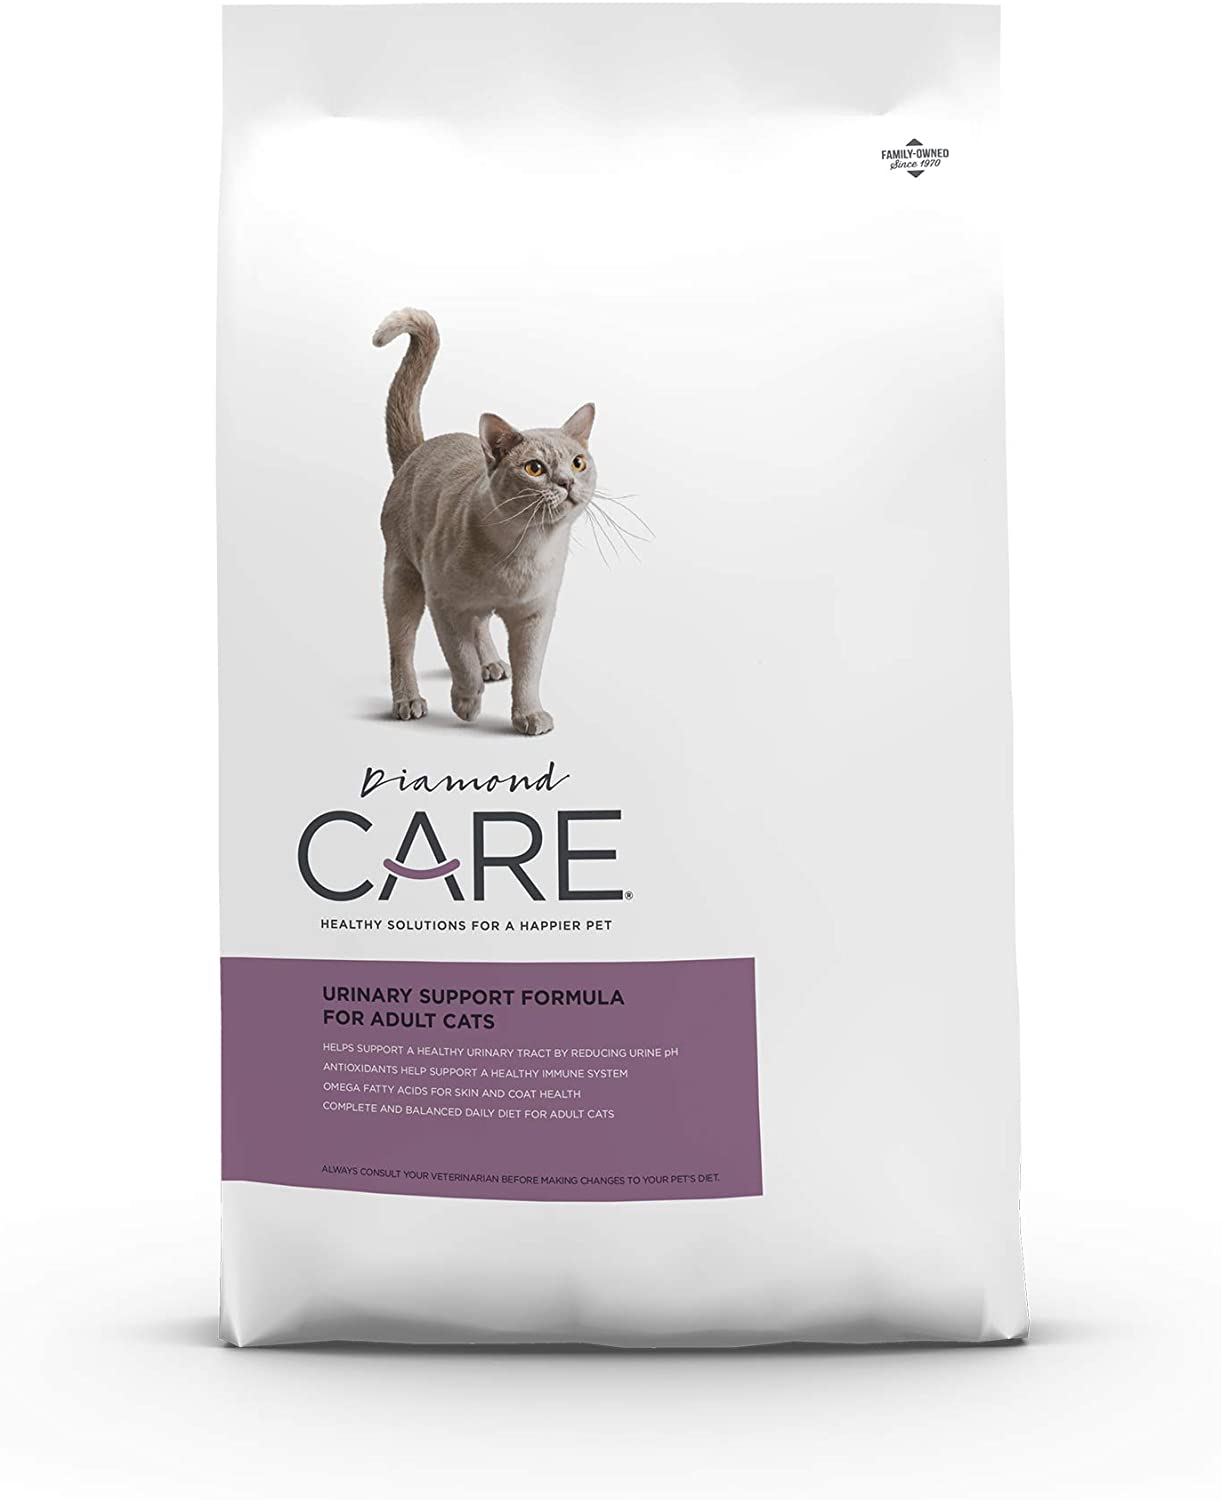 Diamond CARE Adult Dry Dog Food to Support Health Issues with Weight Management, Sensitive Skin, Sensitive Stomach and Promote Overall Health with Protein, Probiotics and Antioxidants